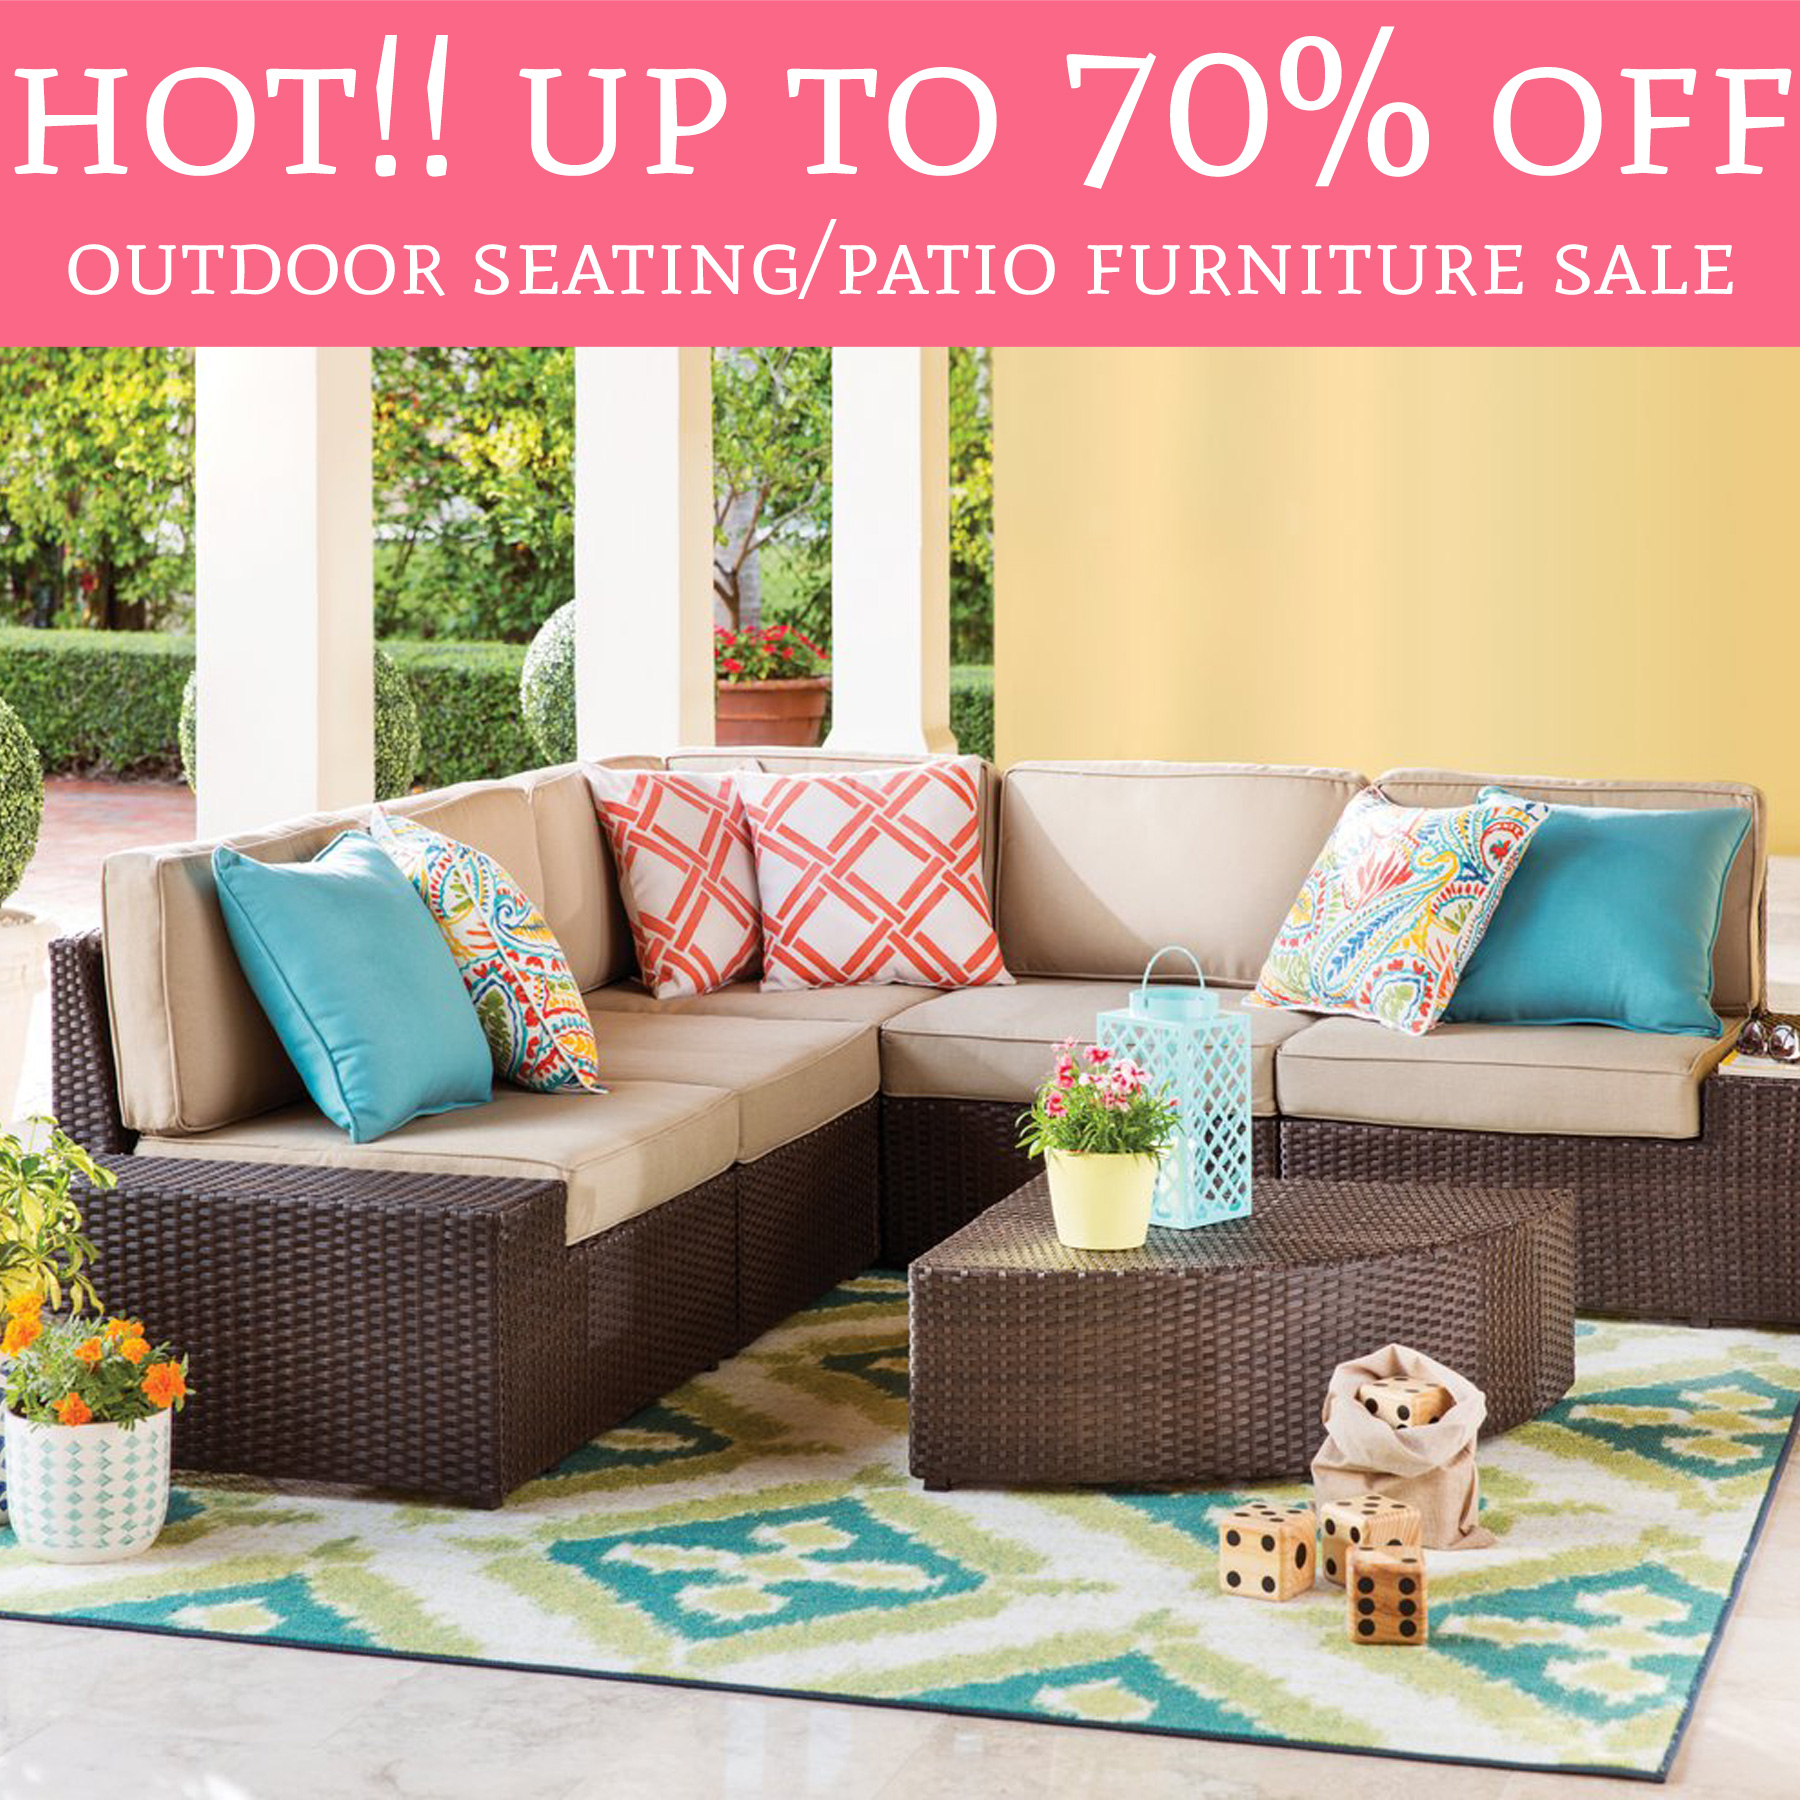 Are You Looking For New Patio Furniture?!